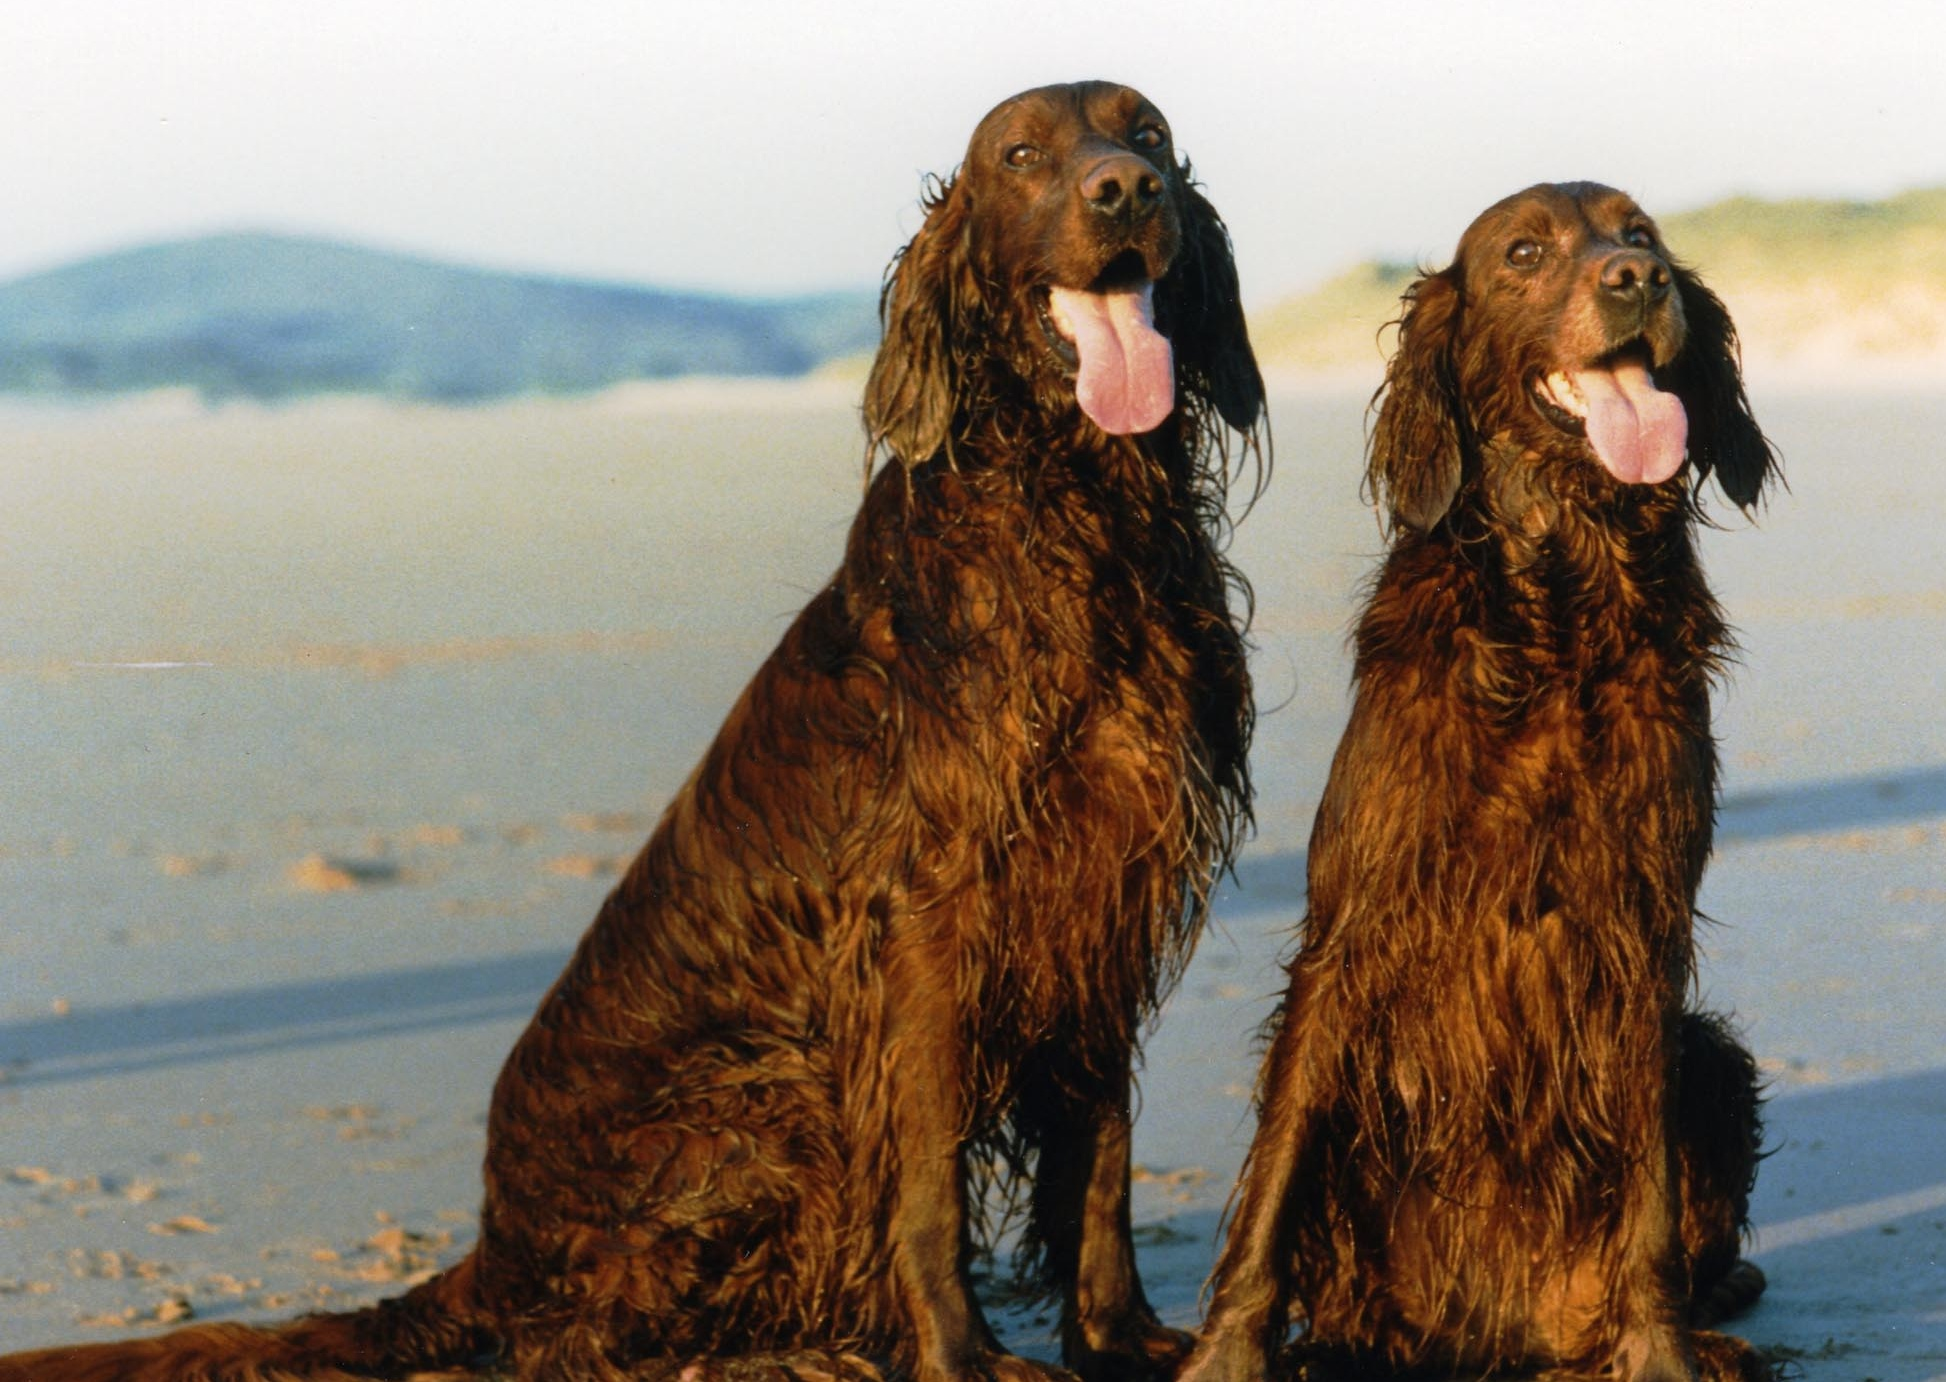 two cute irish setters on the beacj image wallpaper